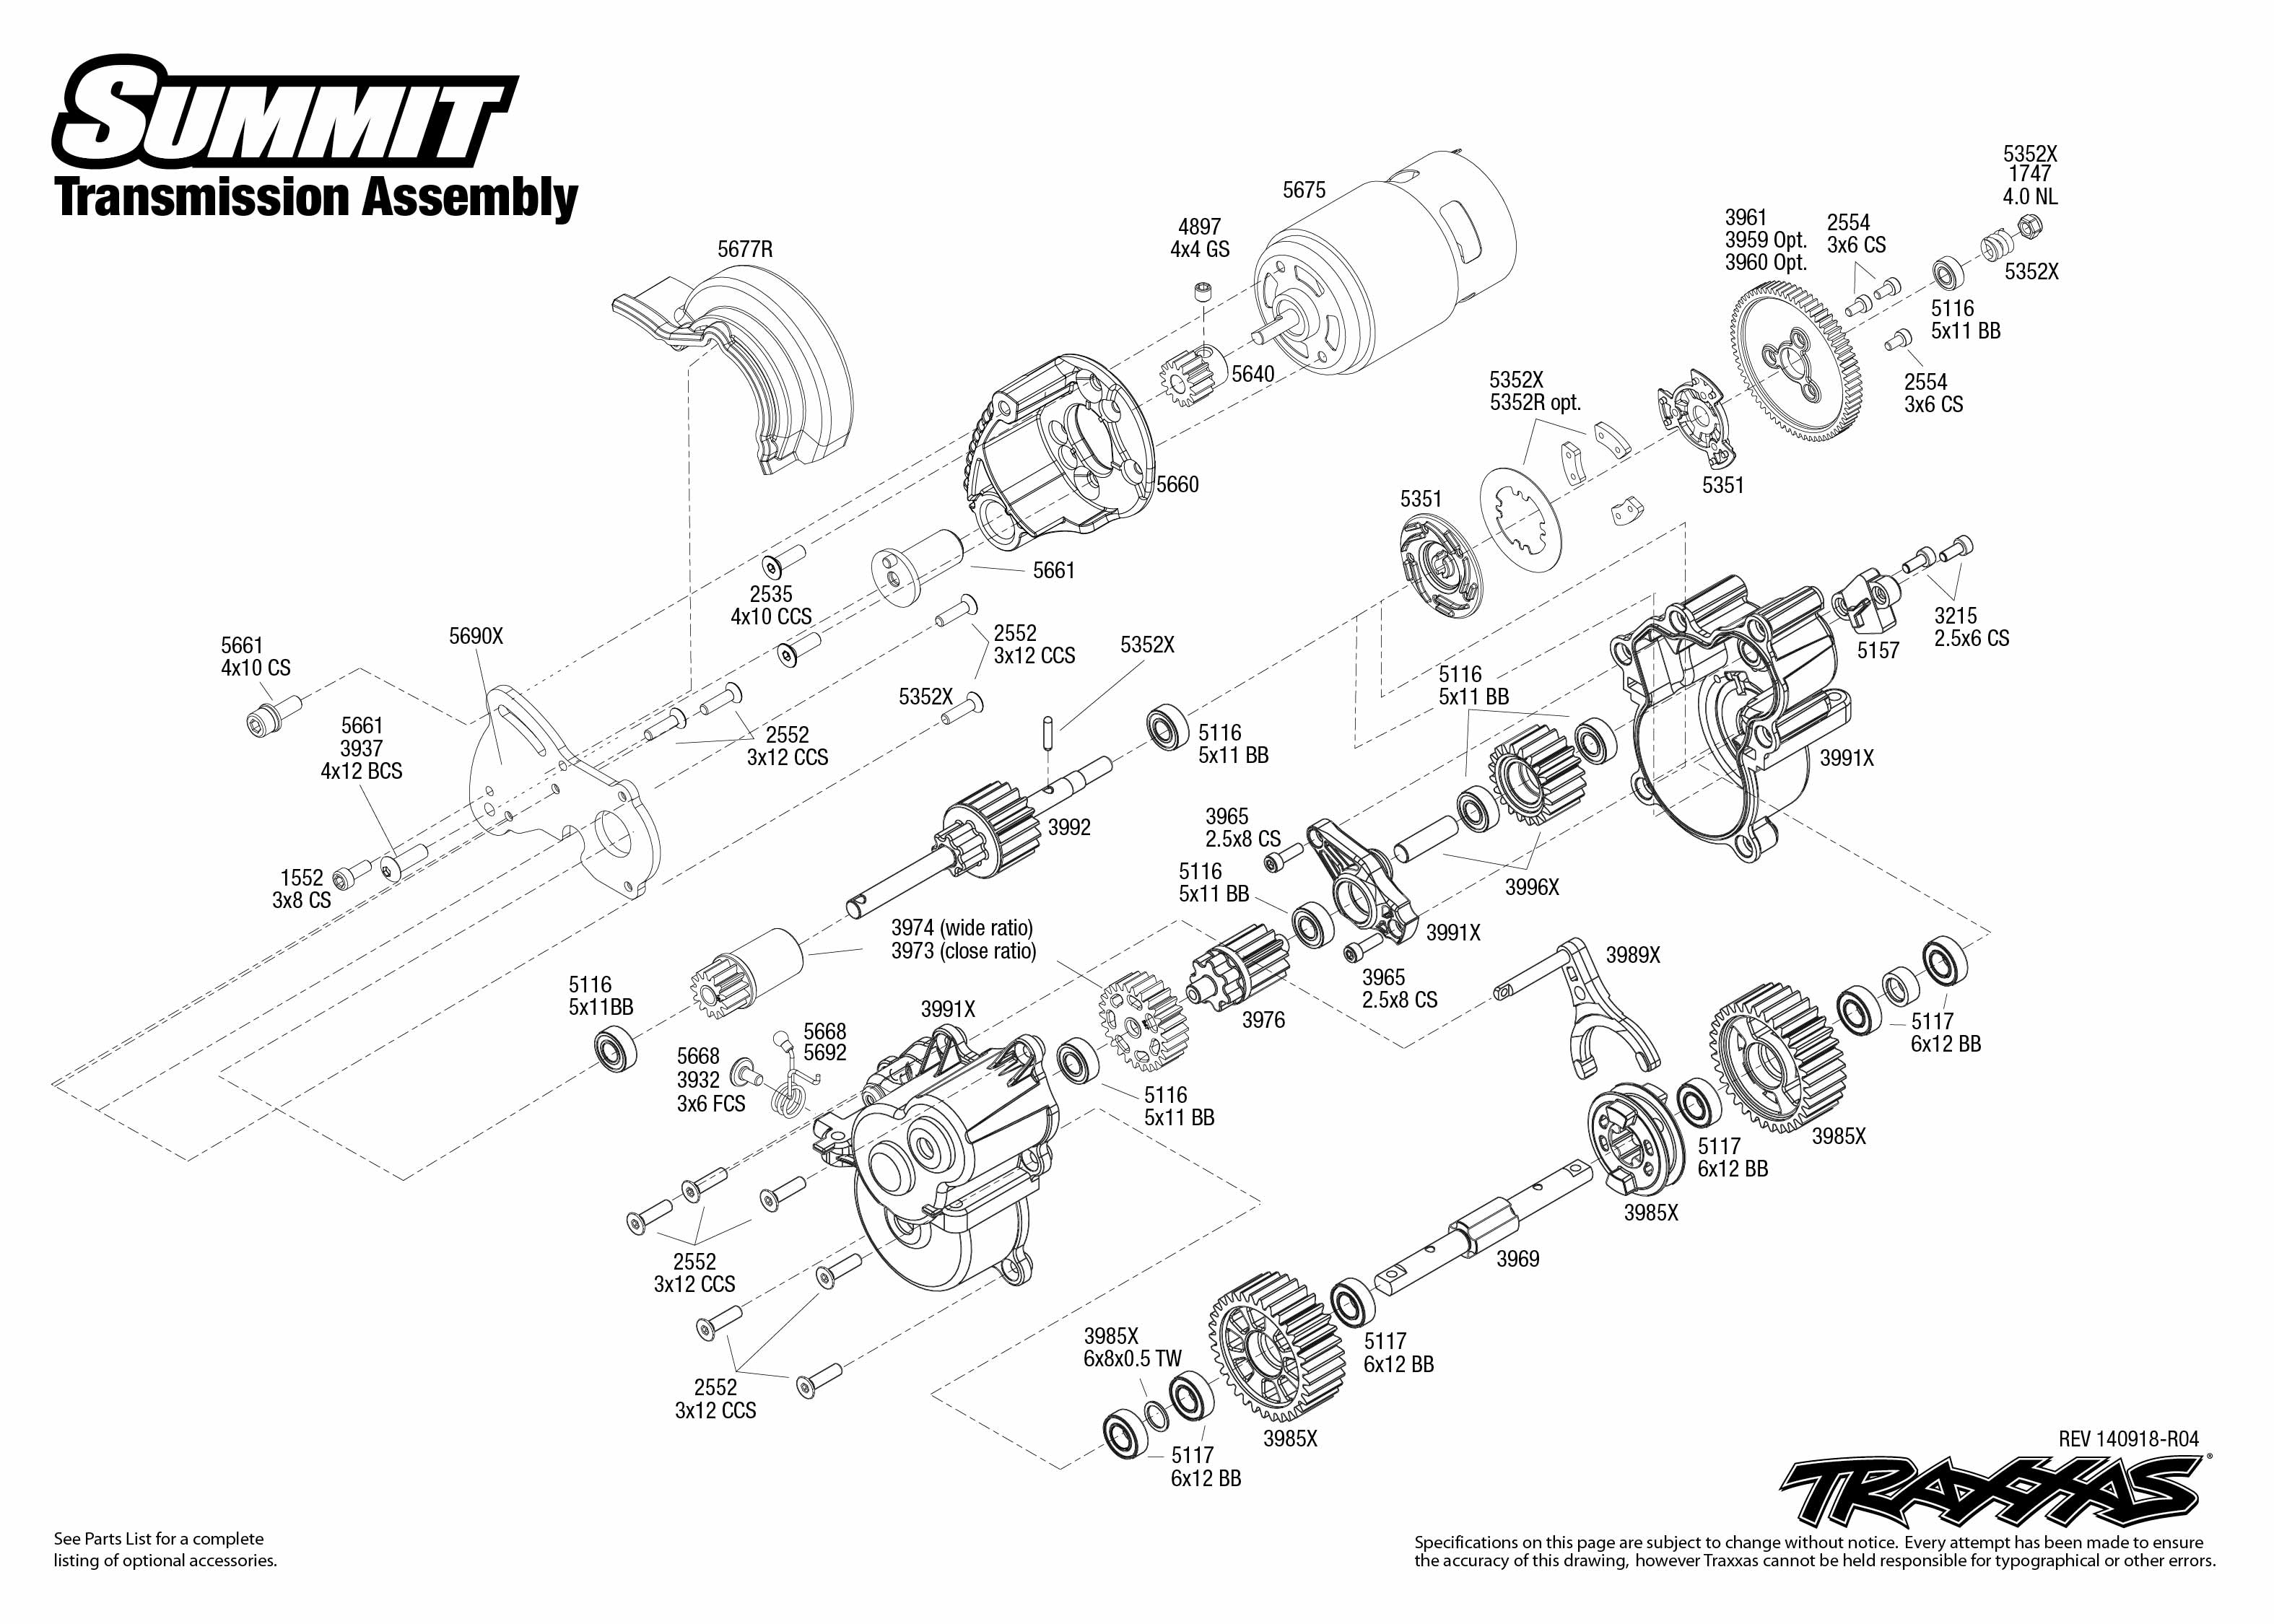 [ZHKZ_3066]  WRG-7916] Traxxas 2 5 Engine Diagram | Traxxas 2 5 Engine Diagram |  | genesisbestsellercollections050818.mx.tl